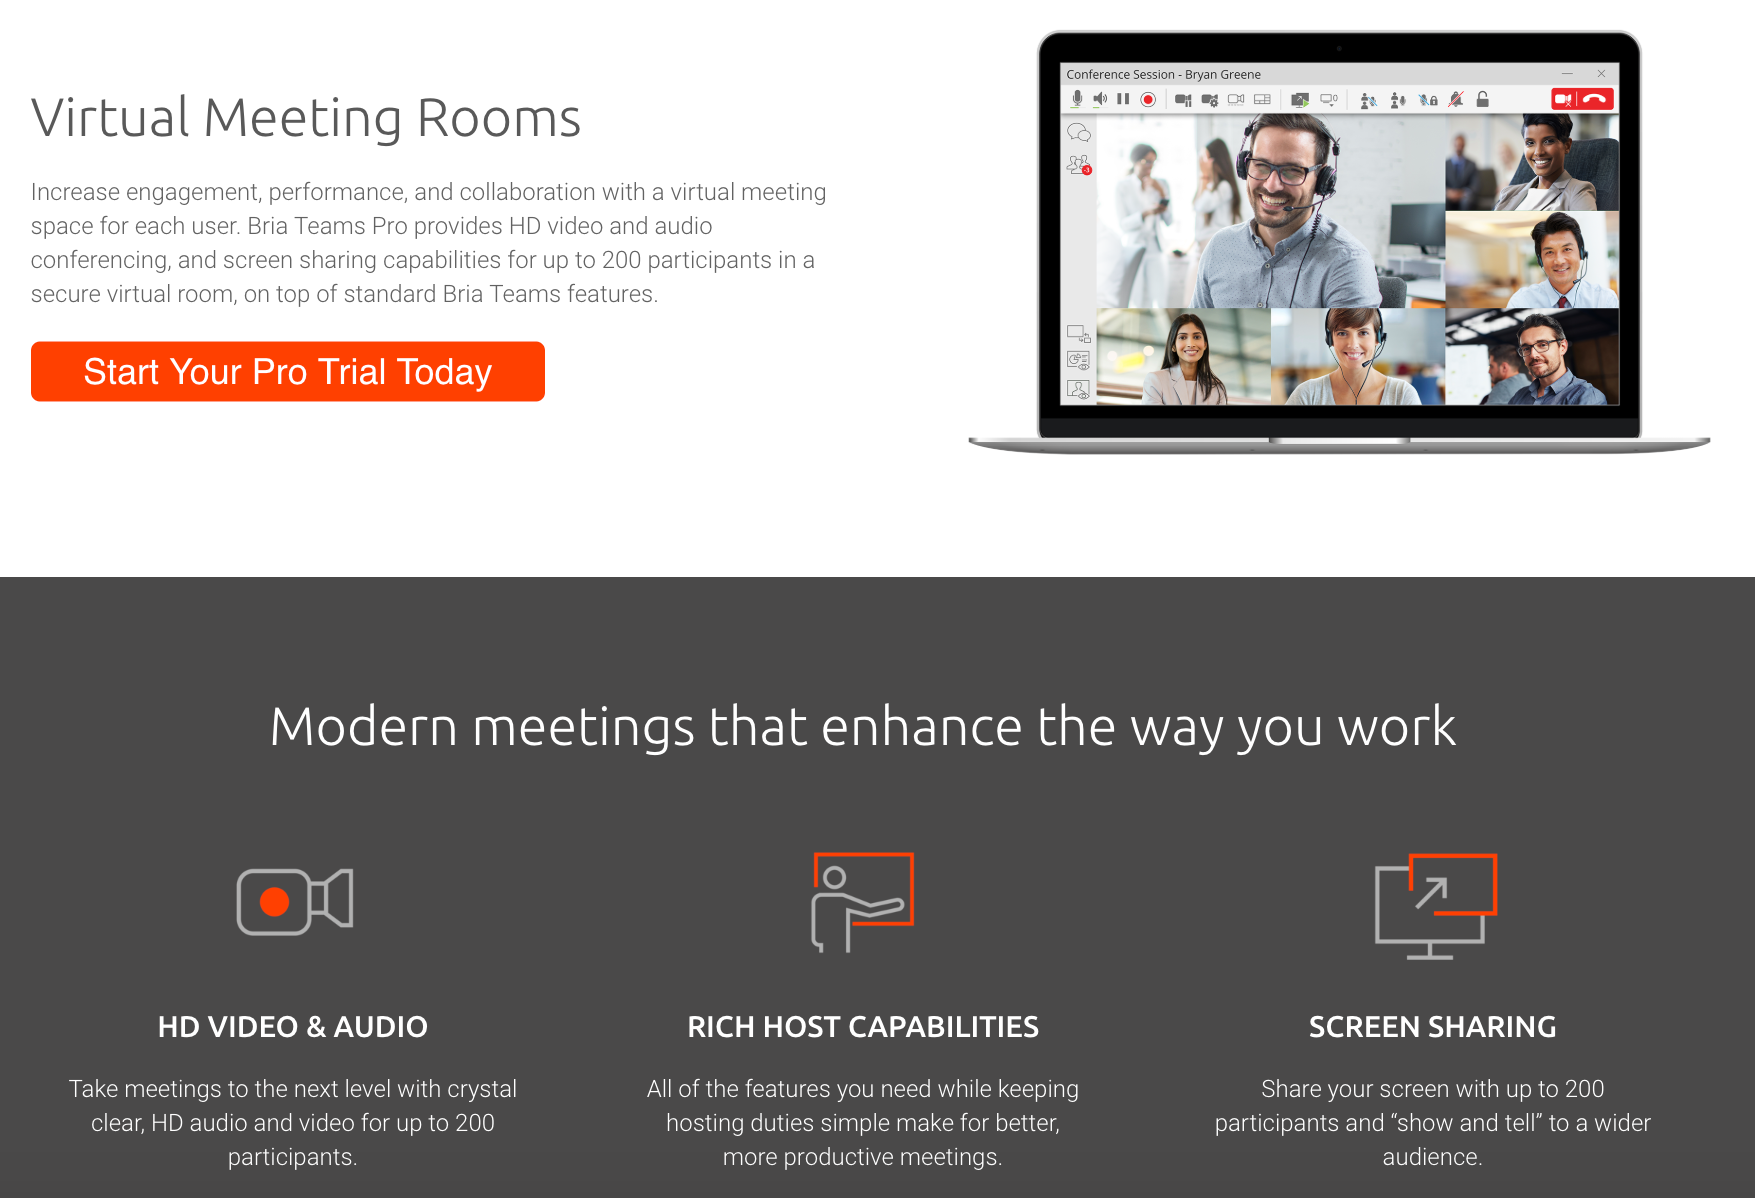 Bria Teams Pro makes virtual meetings easy